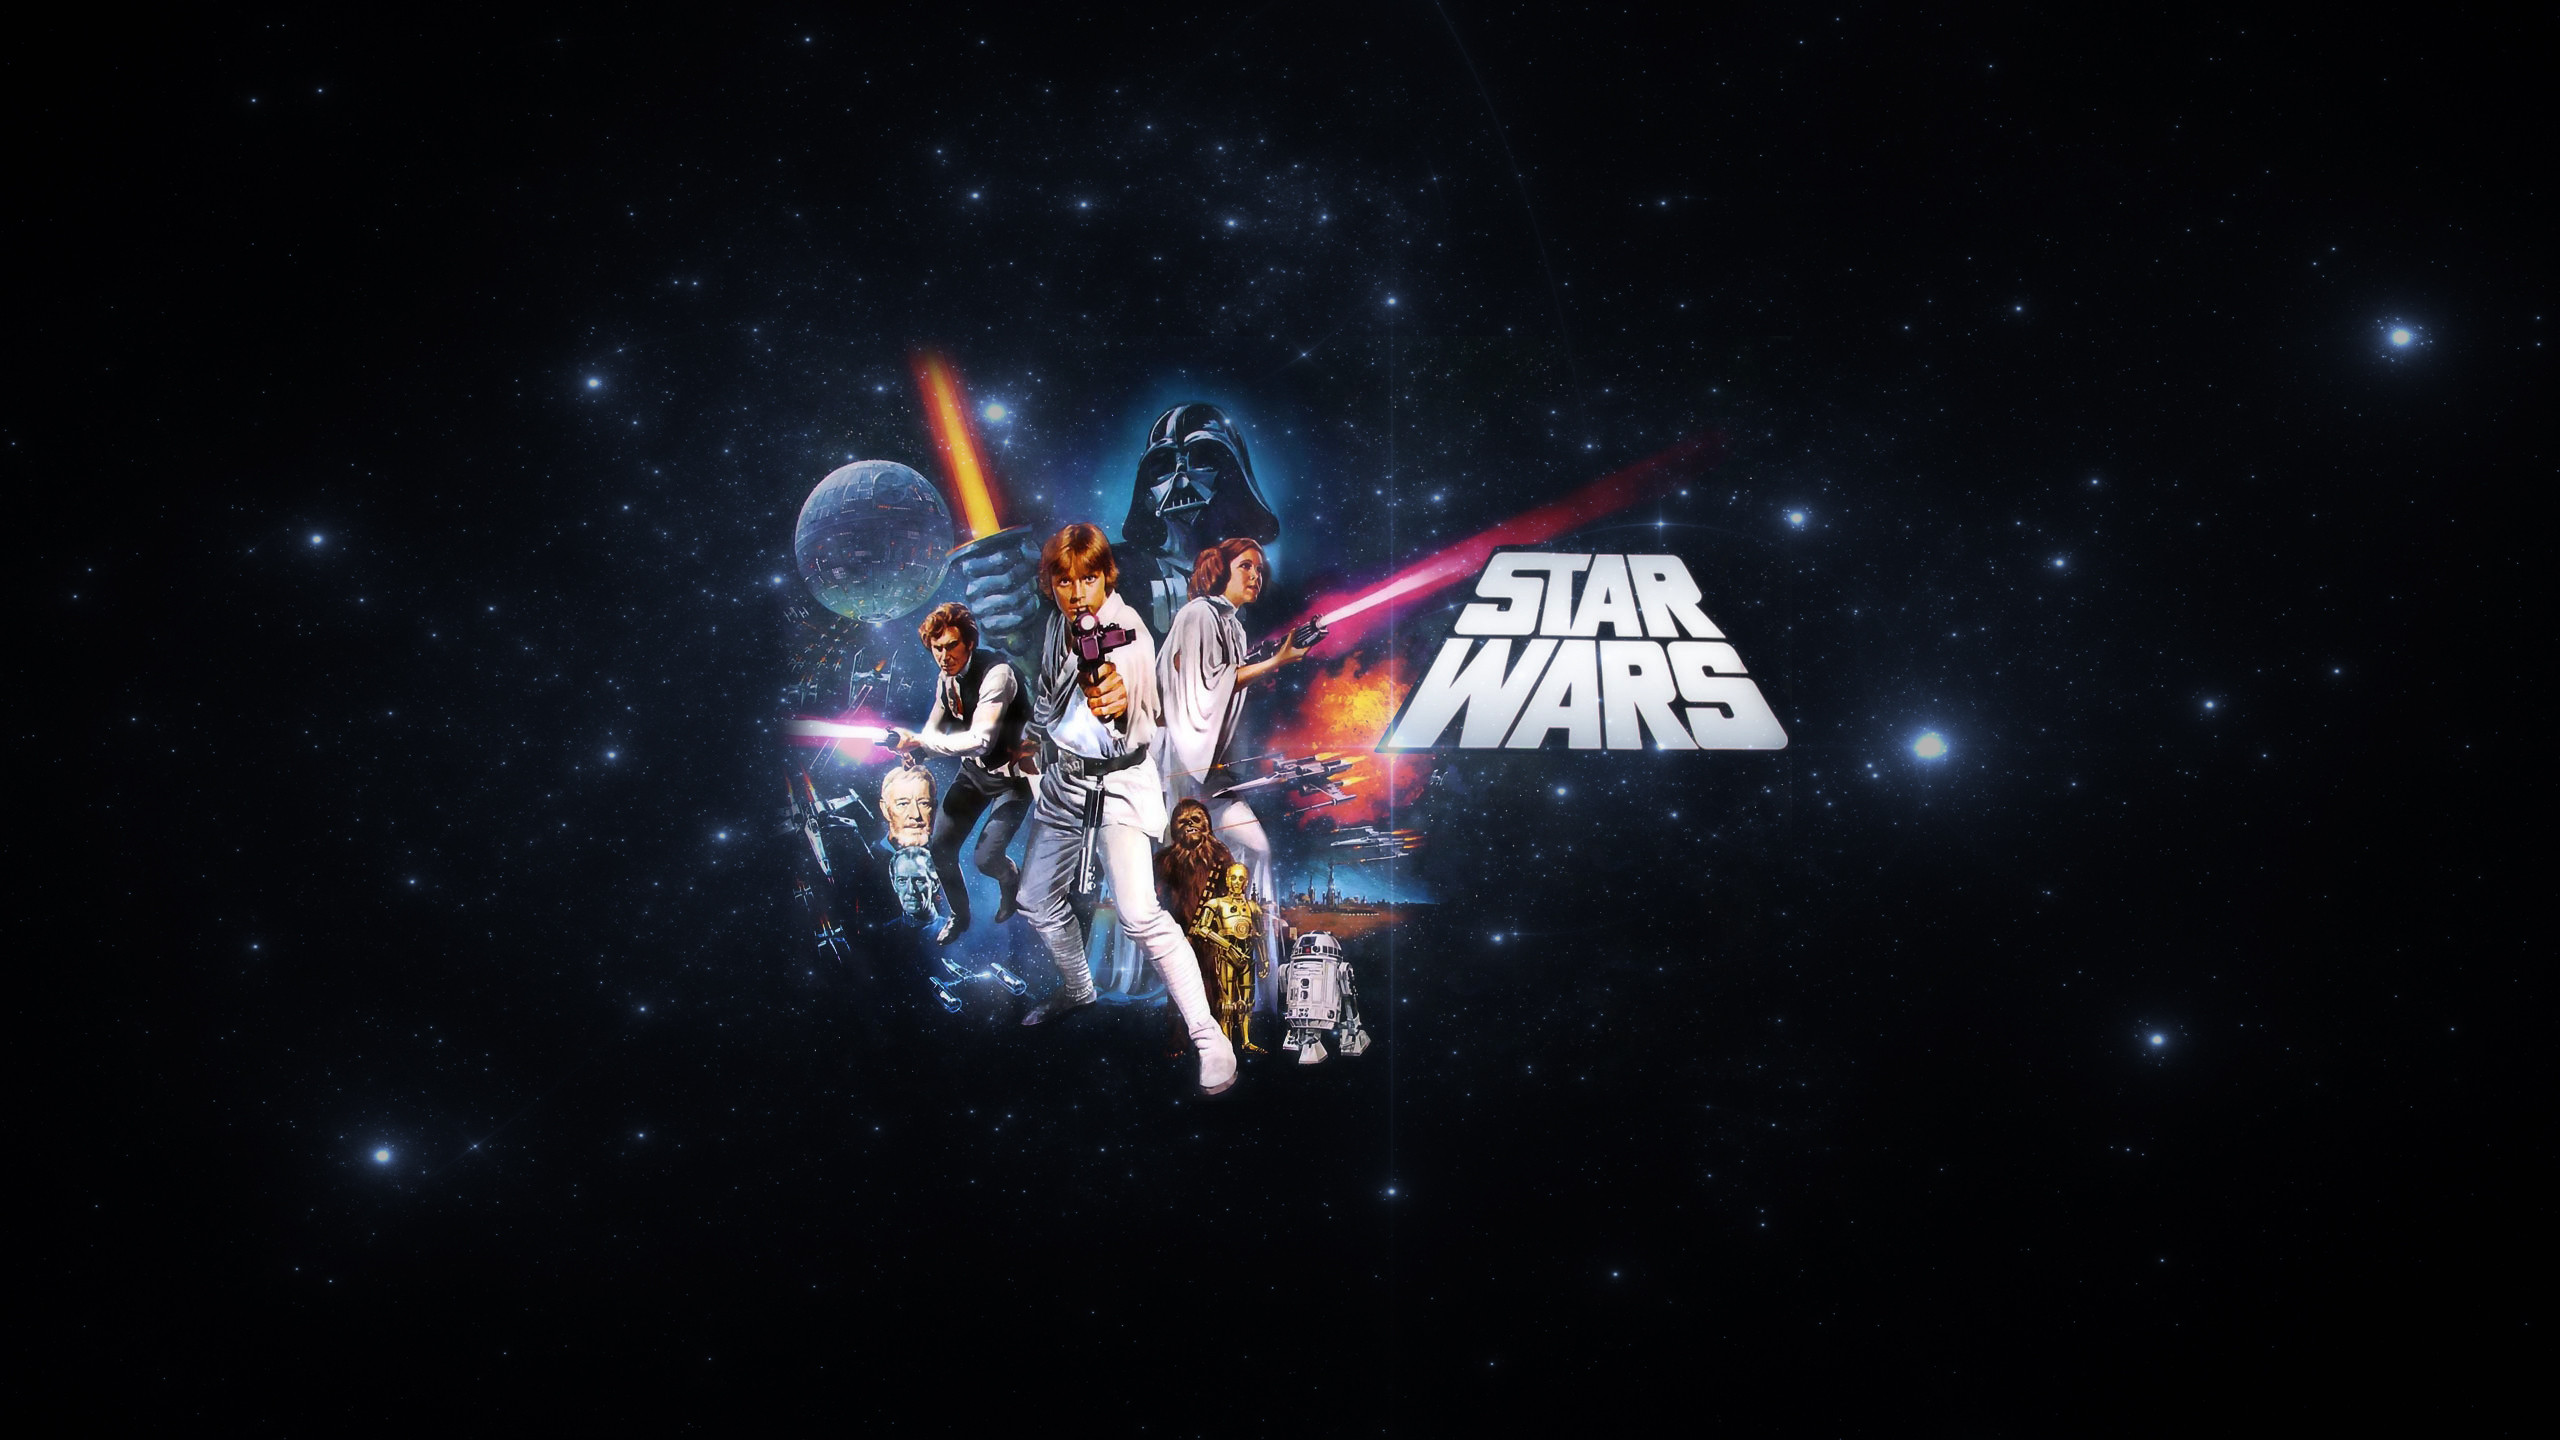 Animated Star Wars Wallpapers - WallpaperSafari